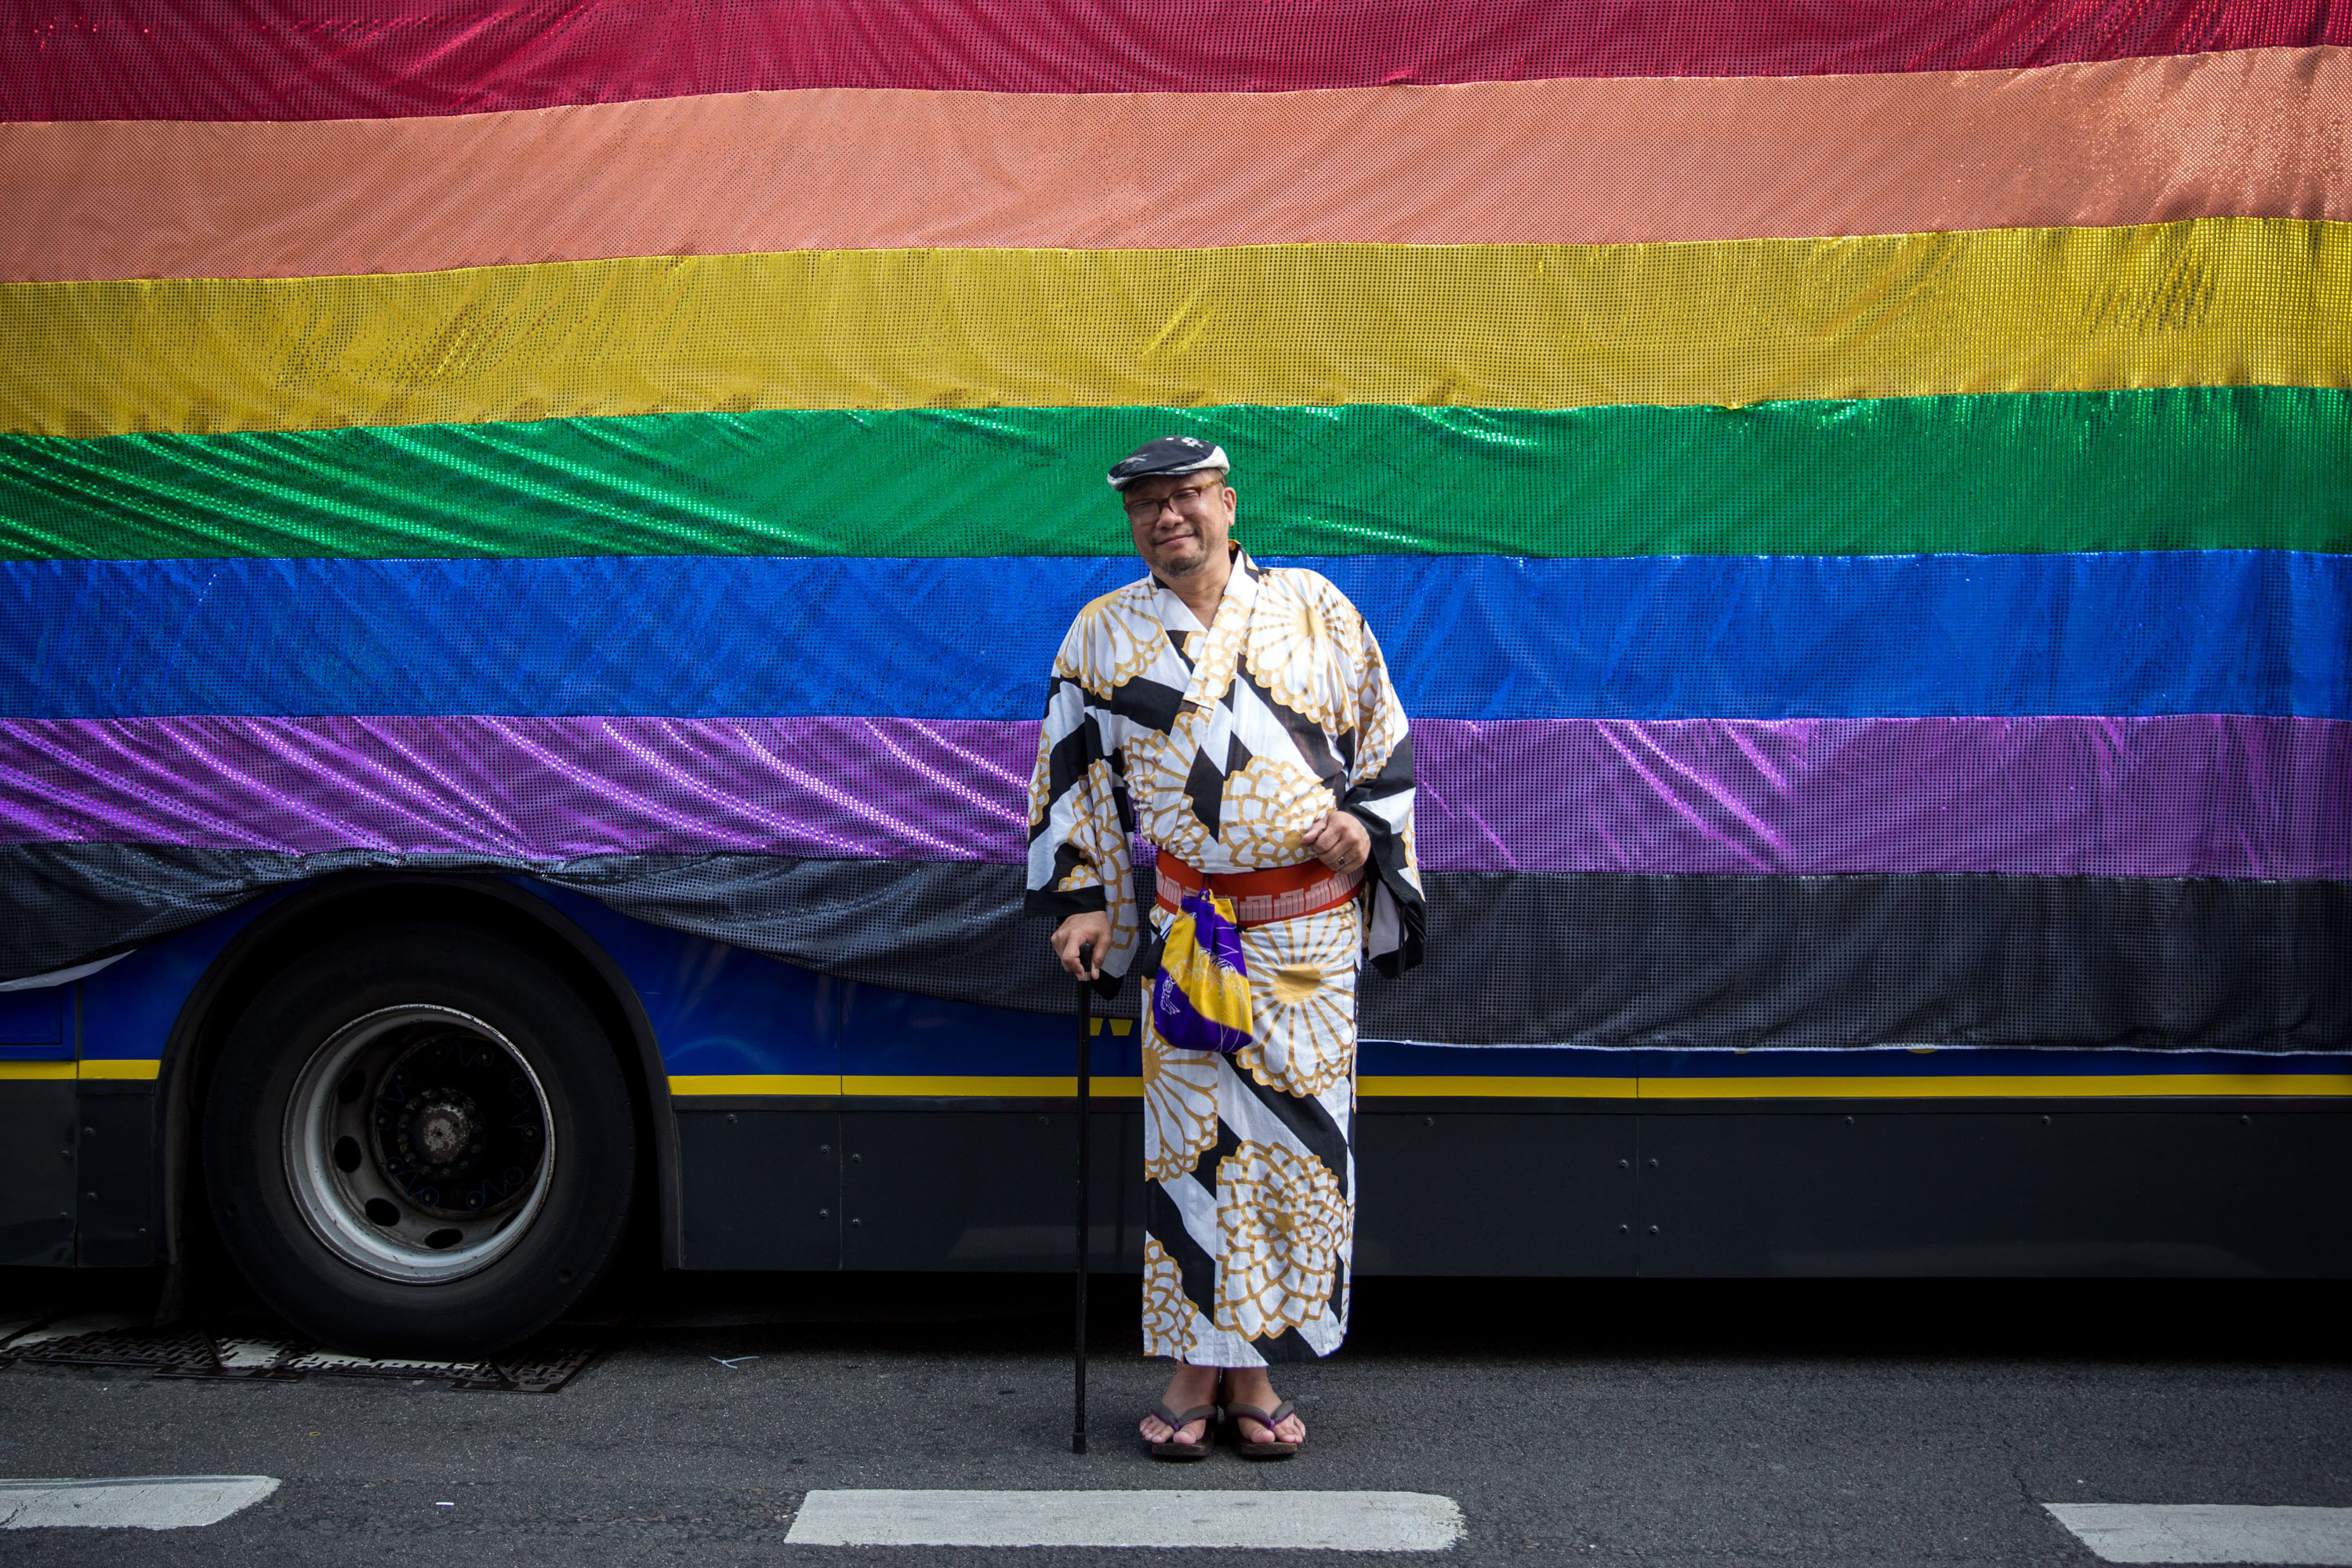 A reveler attends the annual Pride in London Parade on June 27, 2015 in London.